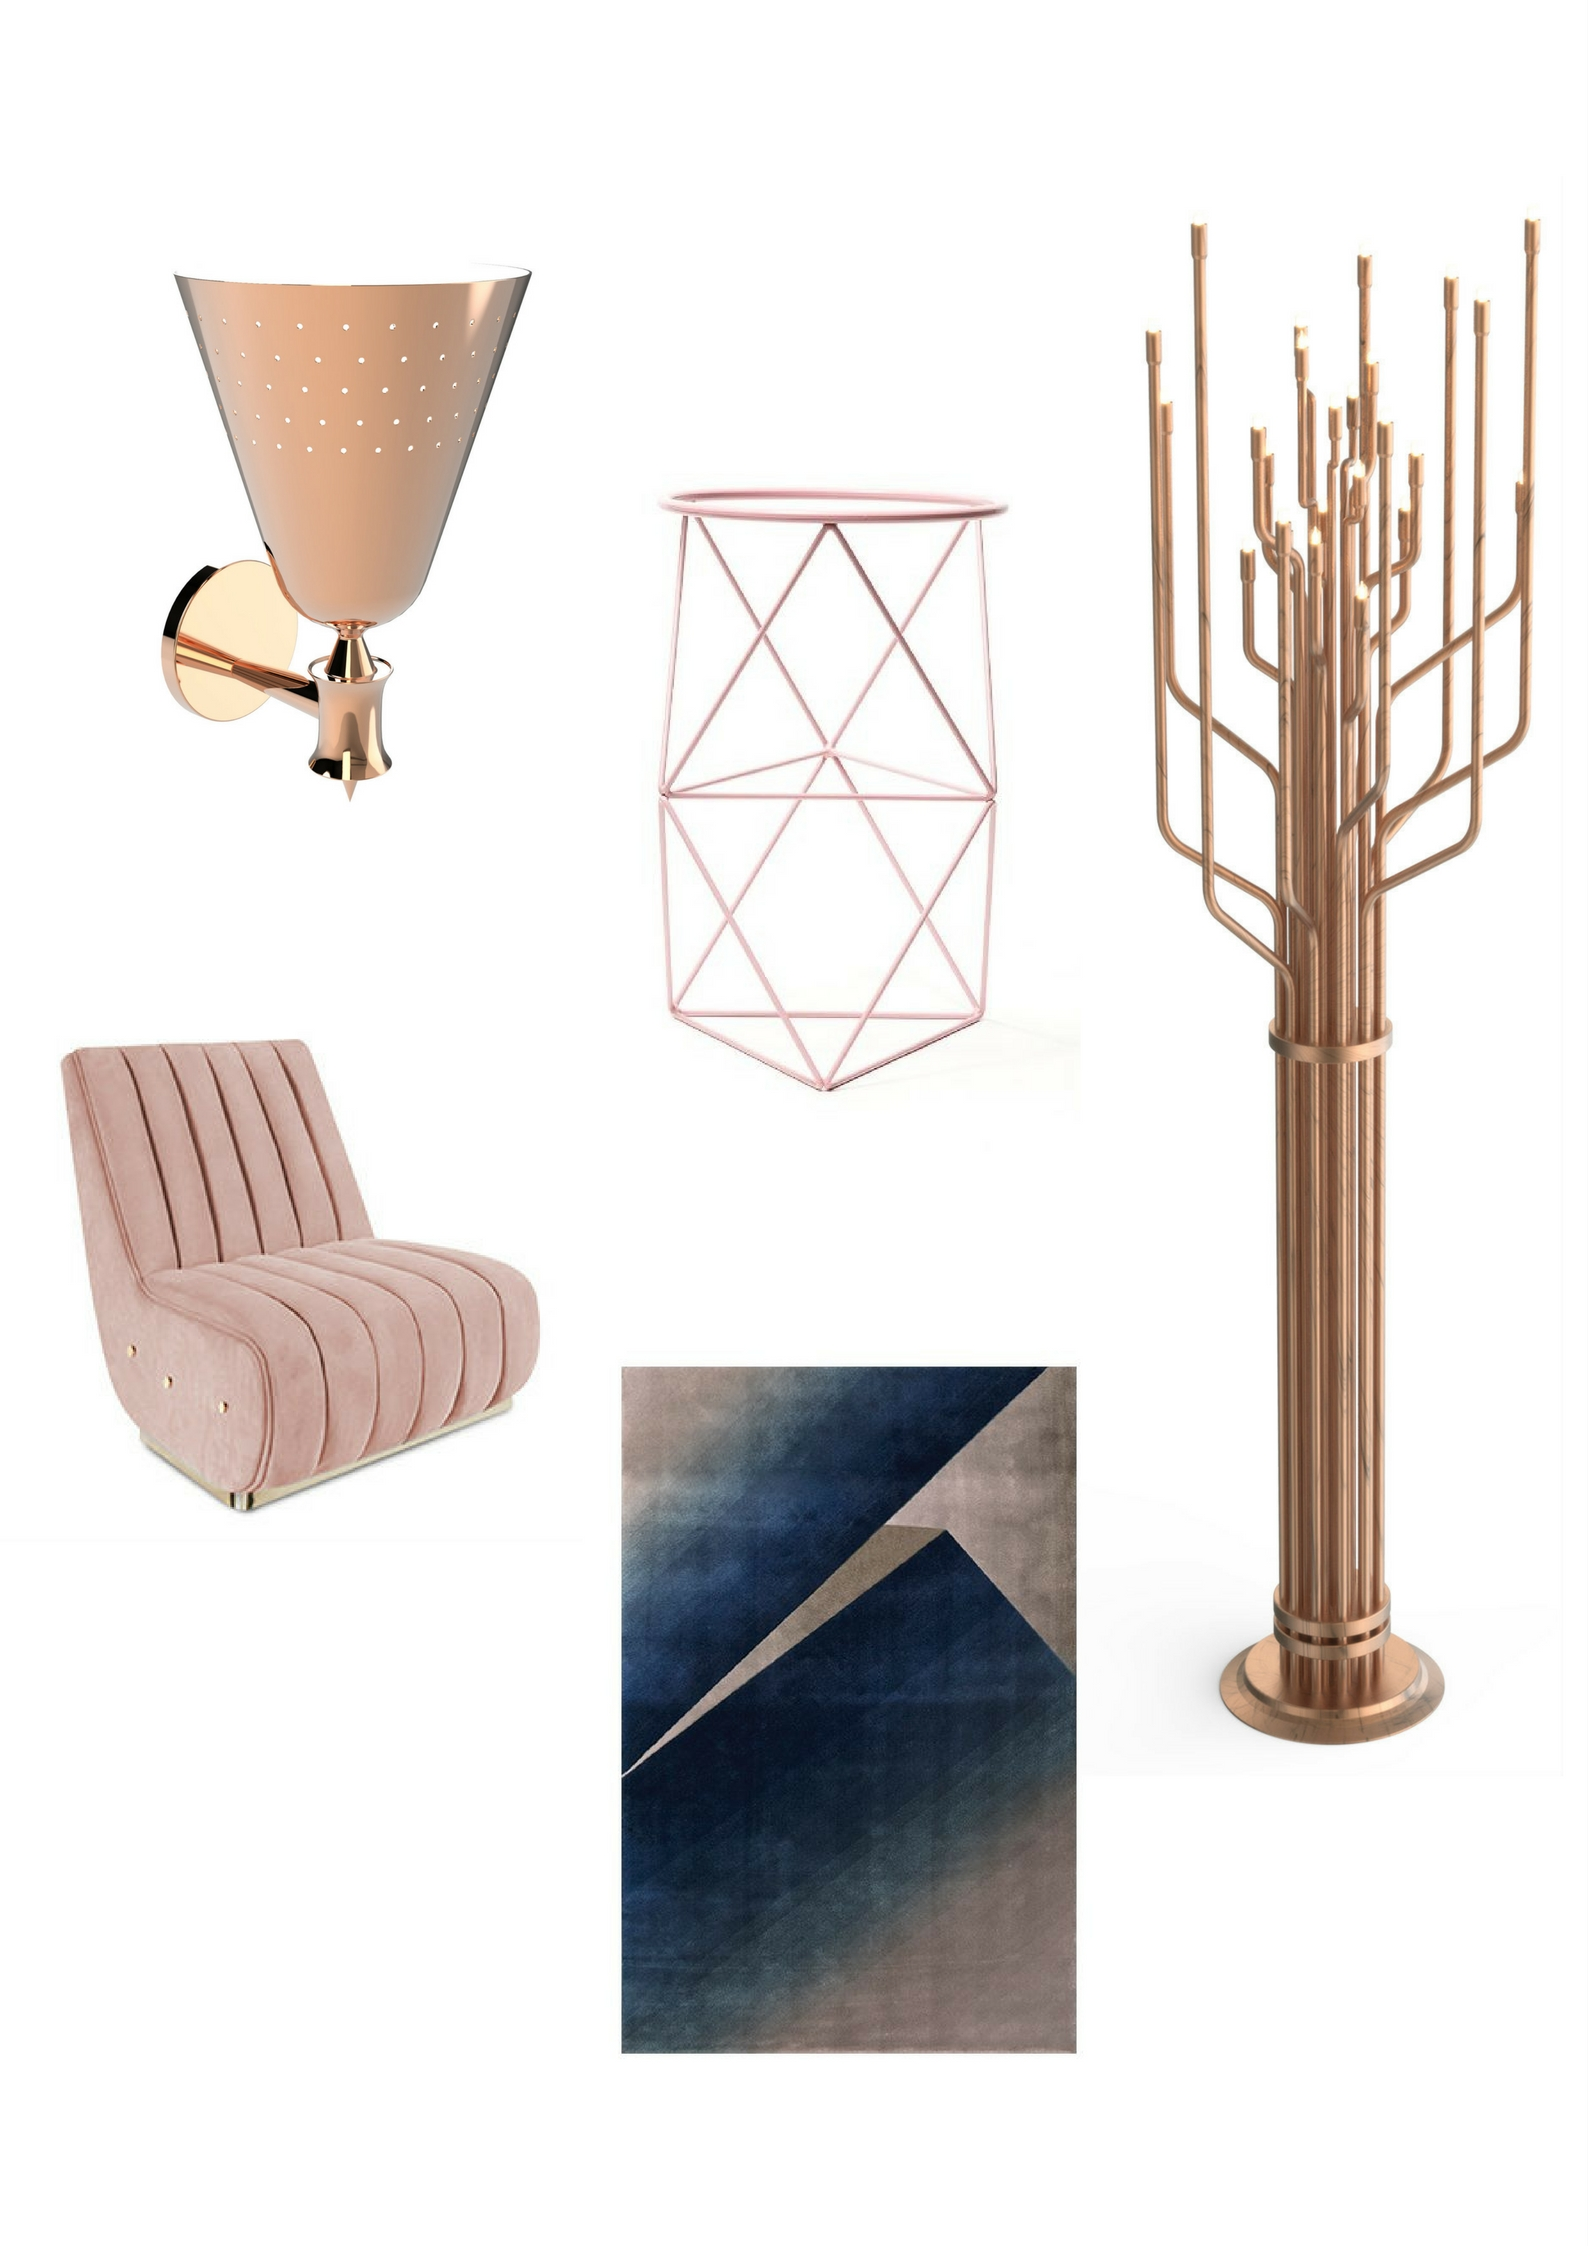 Mood Board Best Ways to Use Pale Pink in Your Home Decor 1  Mood Board: Best Ways to Use Pale Pink in Your Home Decor Moodboard Pale Pink